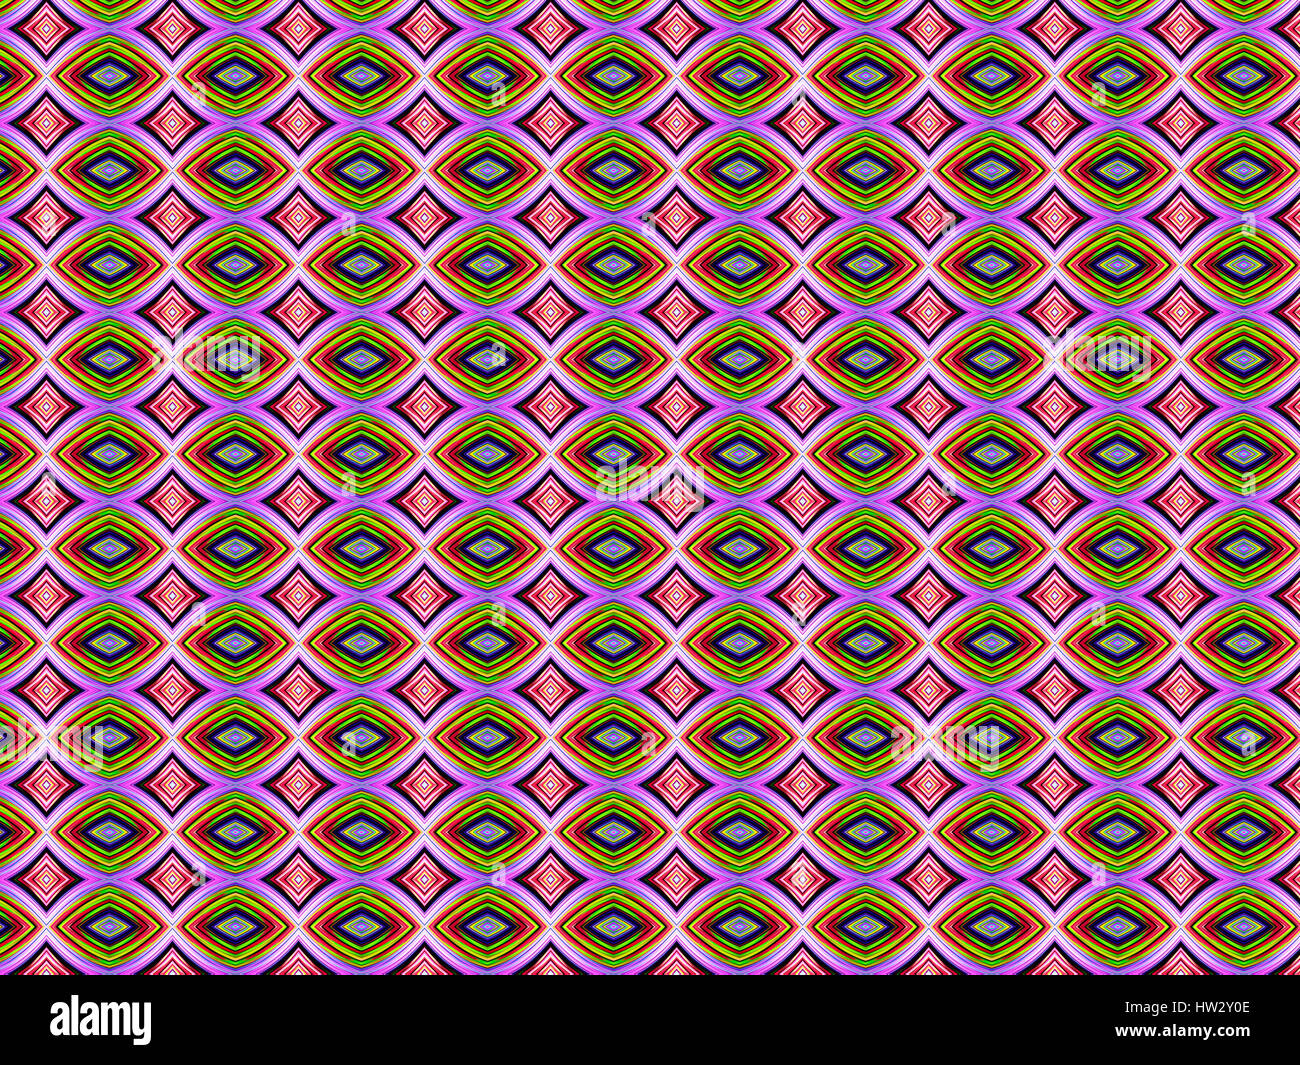 Background Pattern - Stock Image